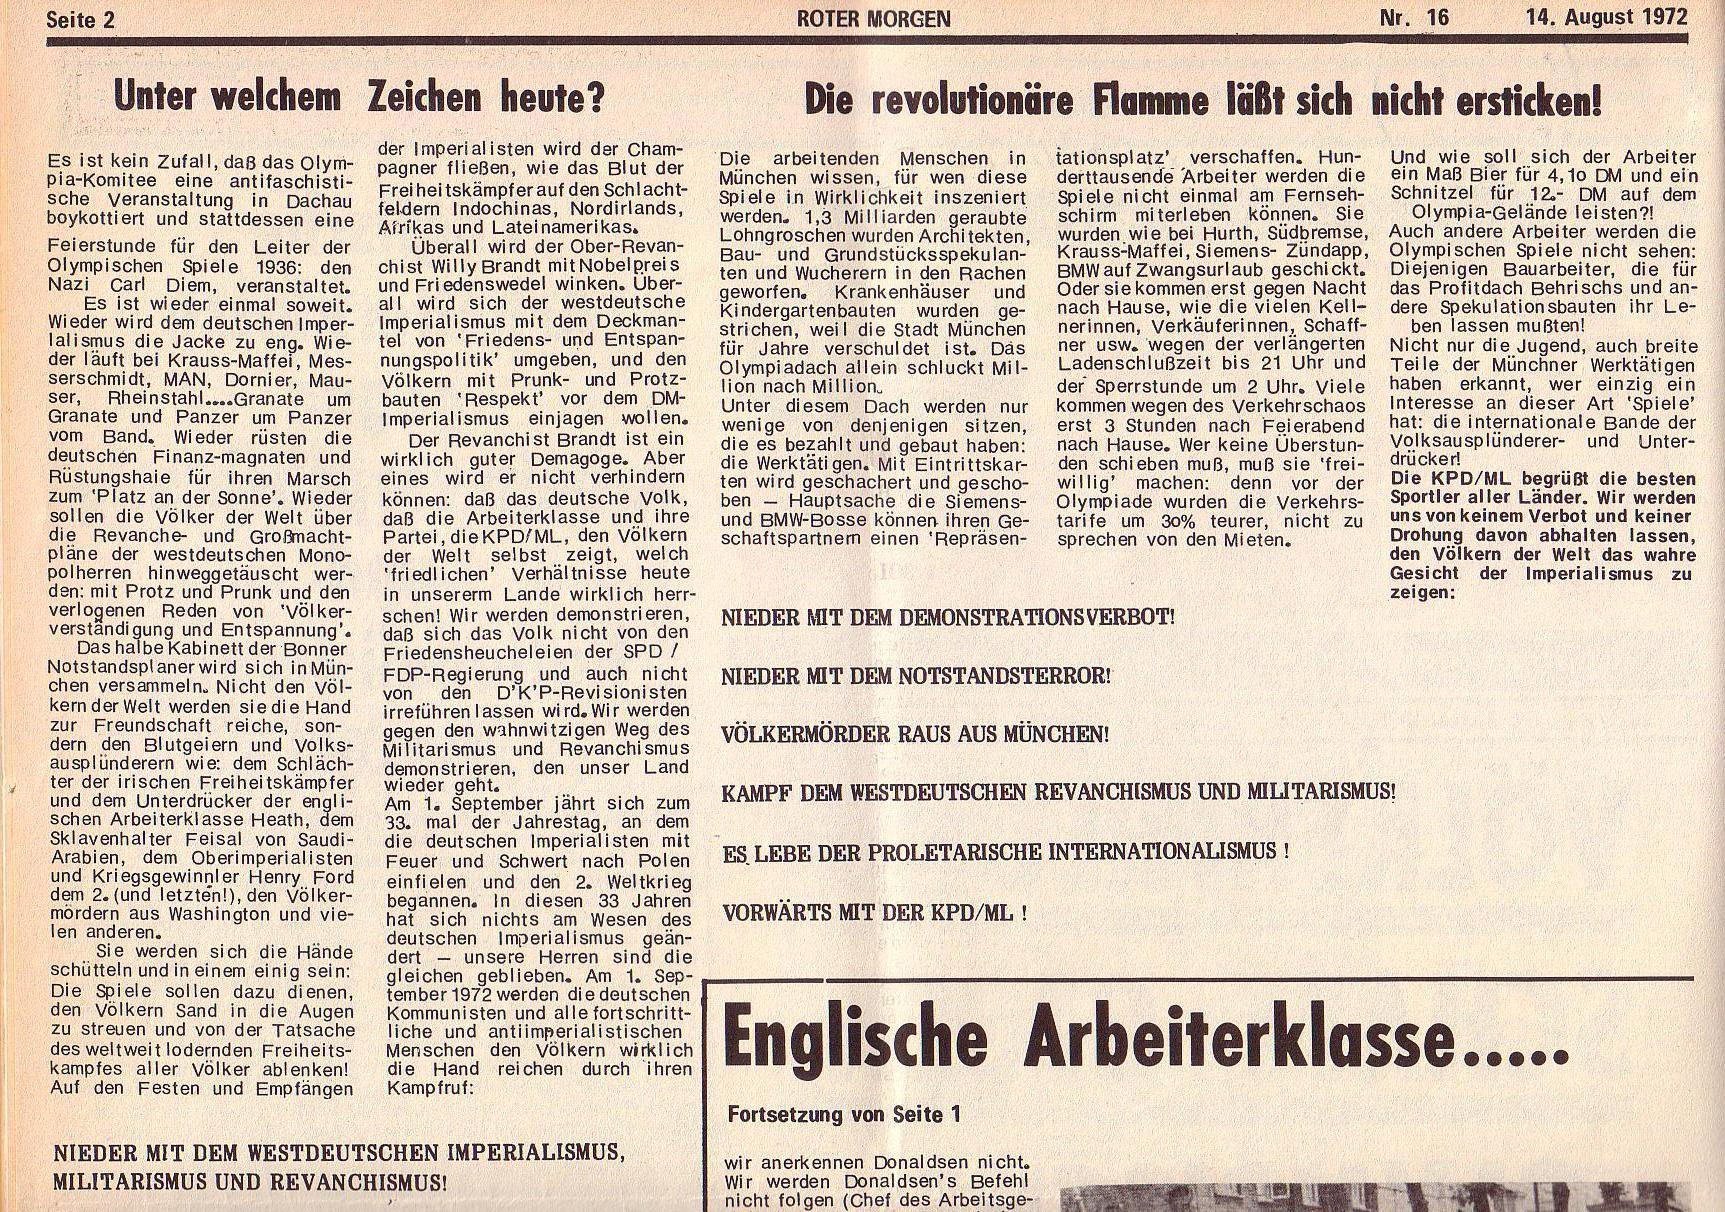 Roter Morgen, 6. Jg., 14. August 1972, Nr. 16, Seite 2a